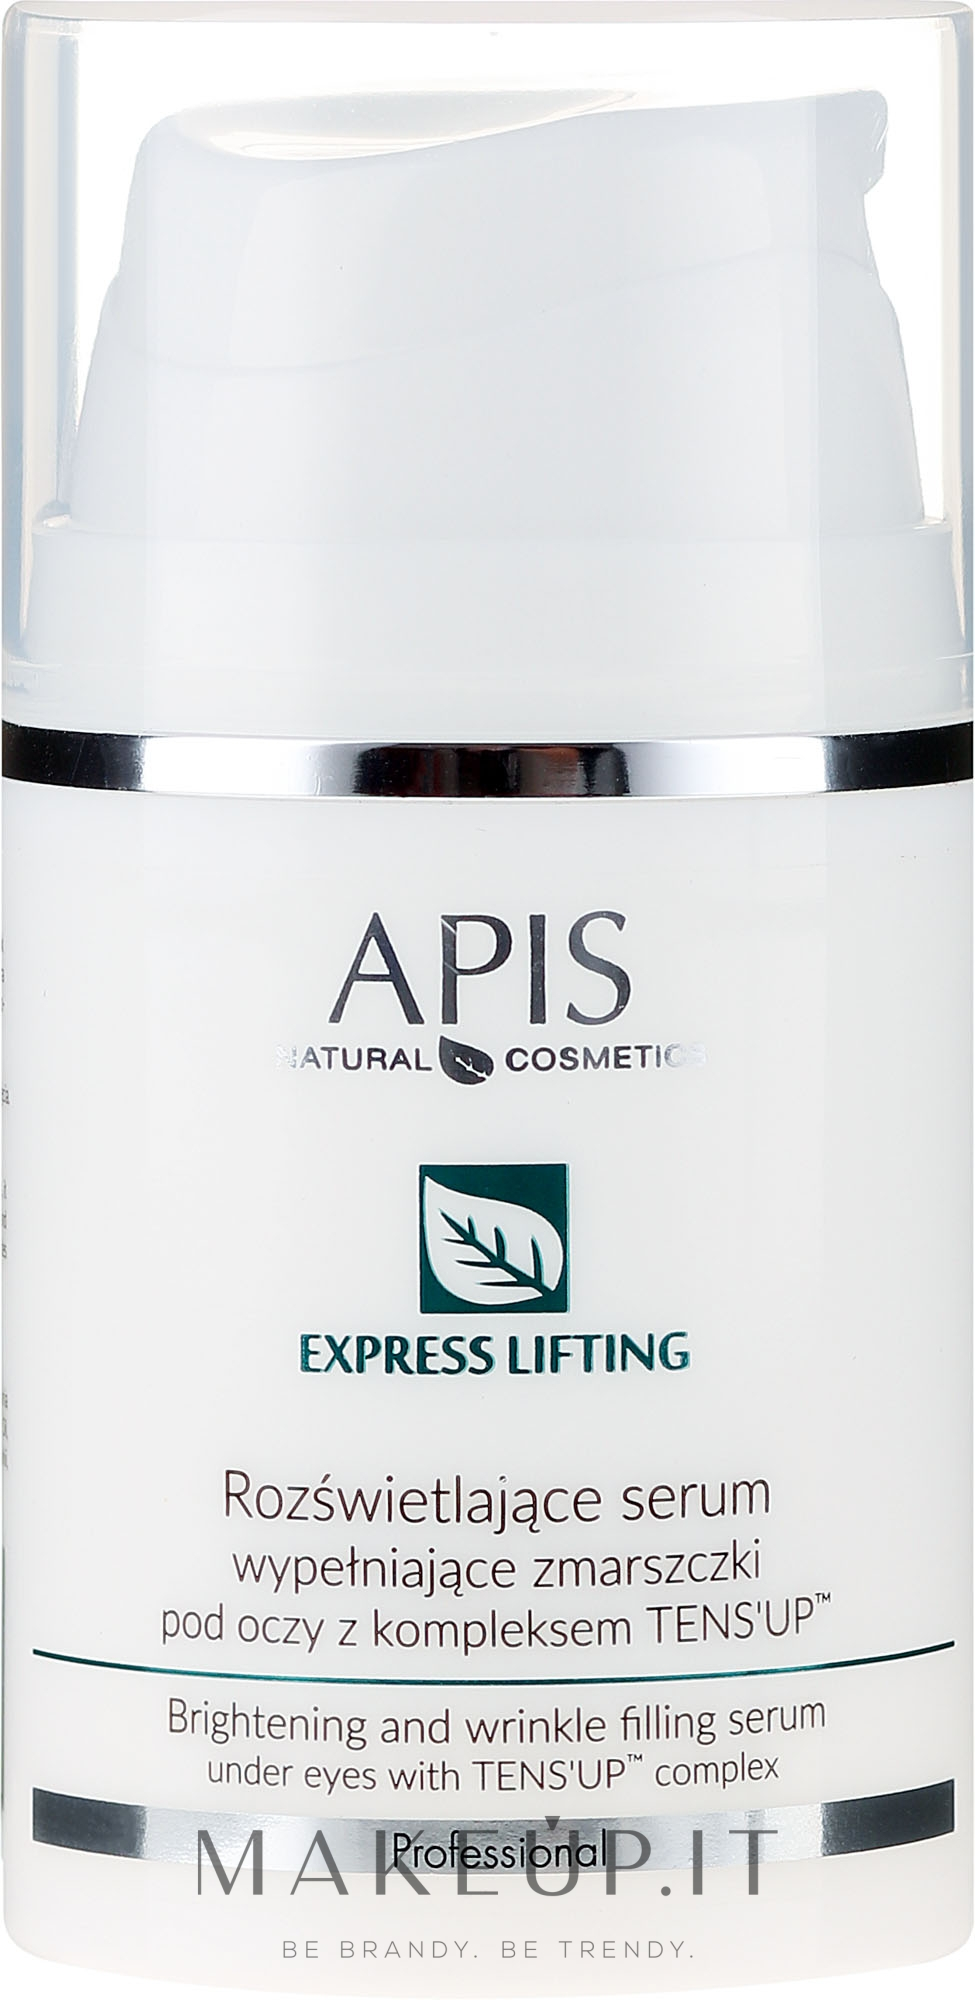 Siero contorno occhi - APIS Professional Express Lifting Brightening Filling Wrinkle Serum With Tens UP — foto 50 ml